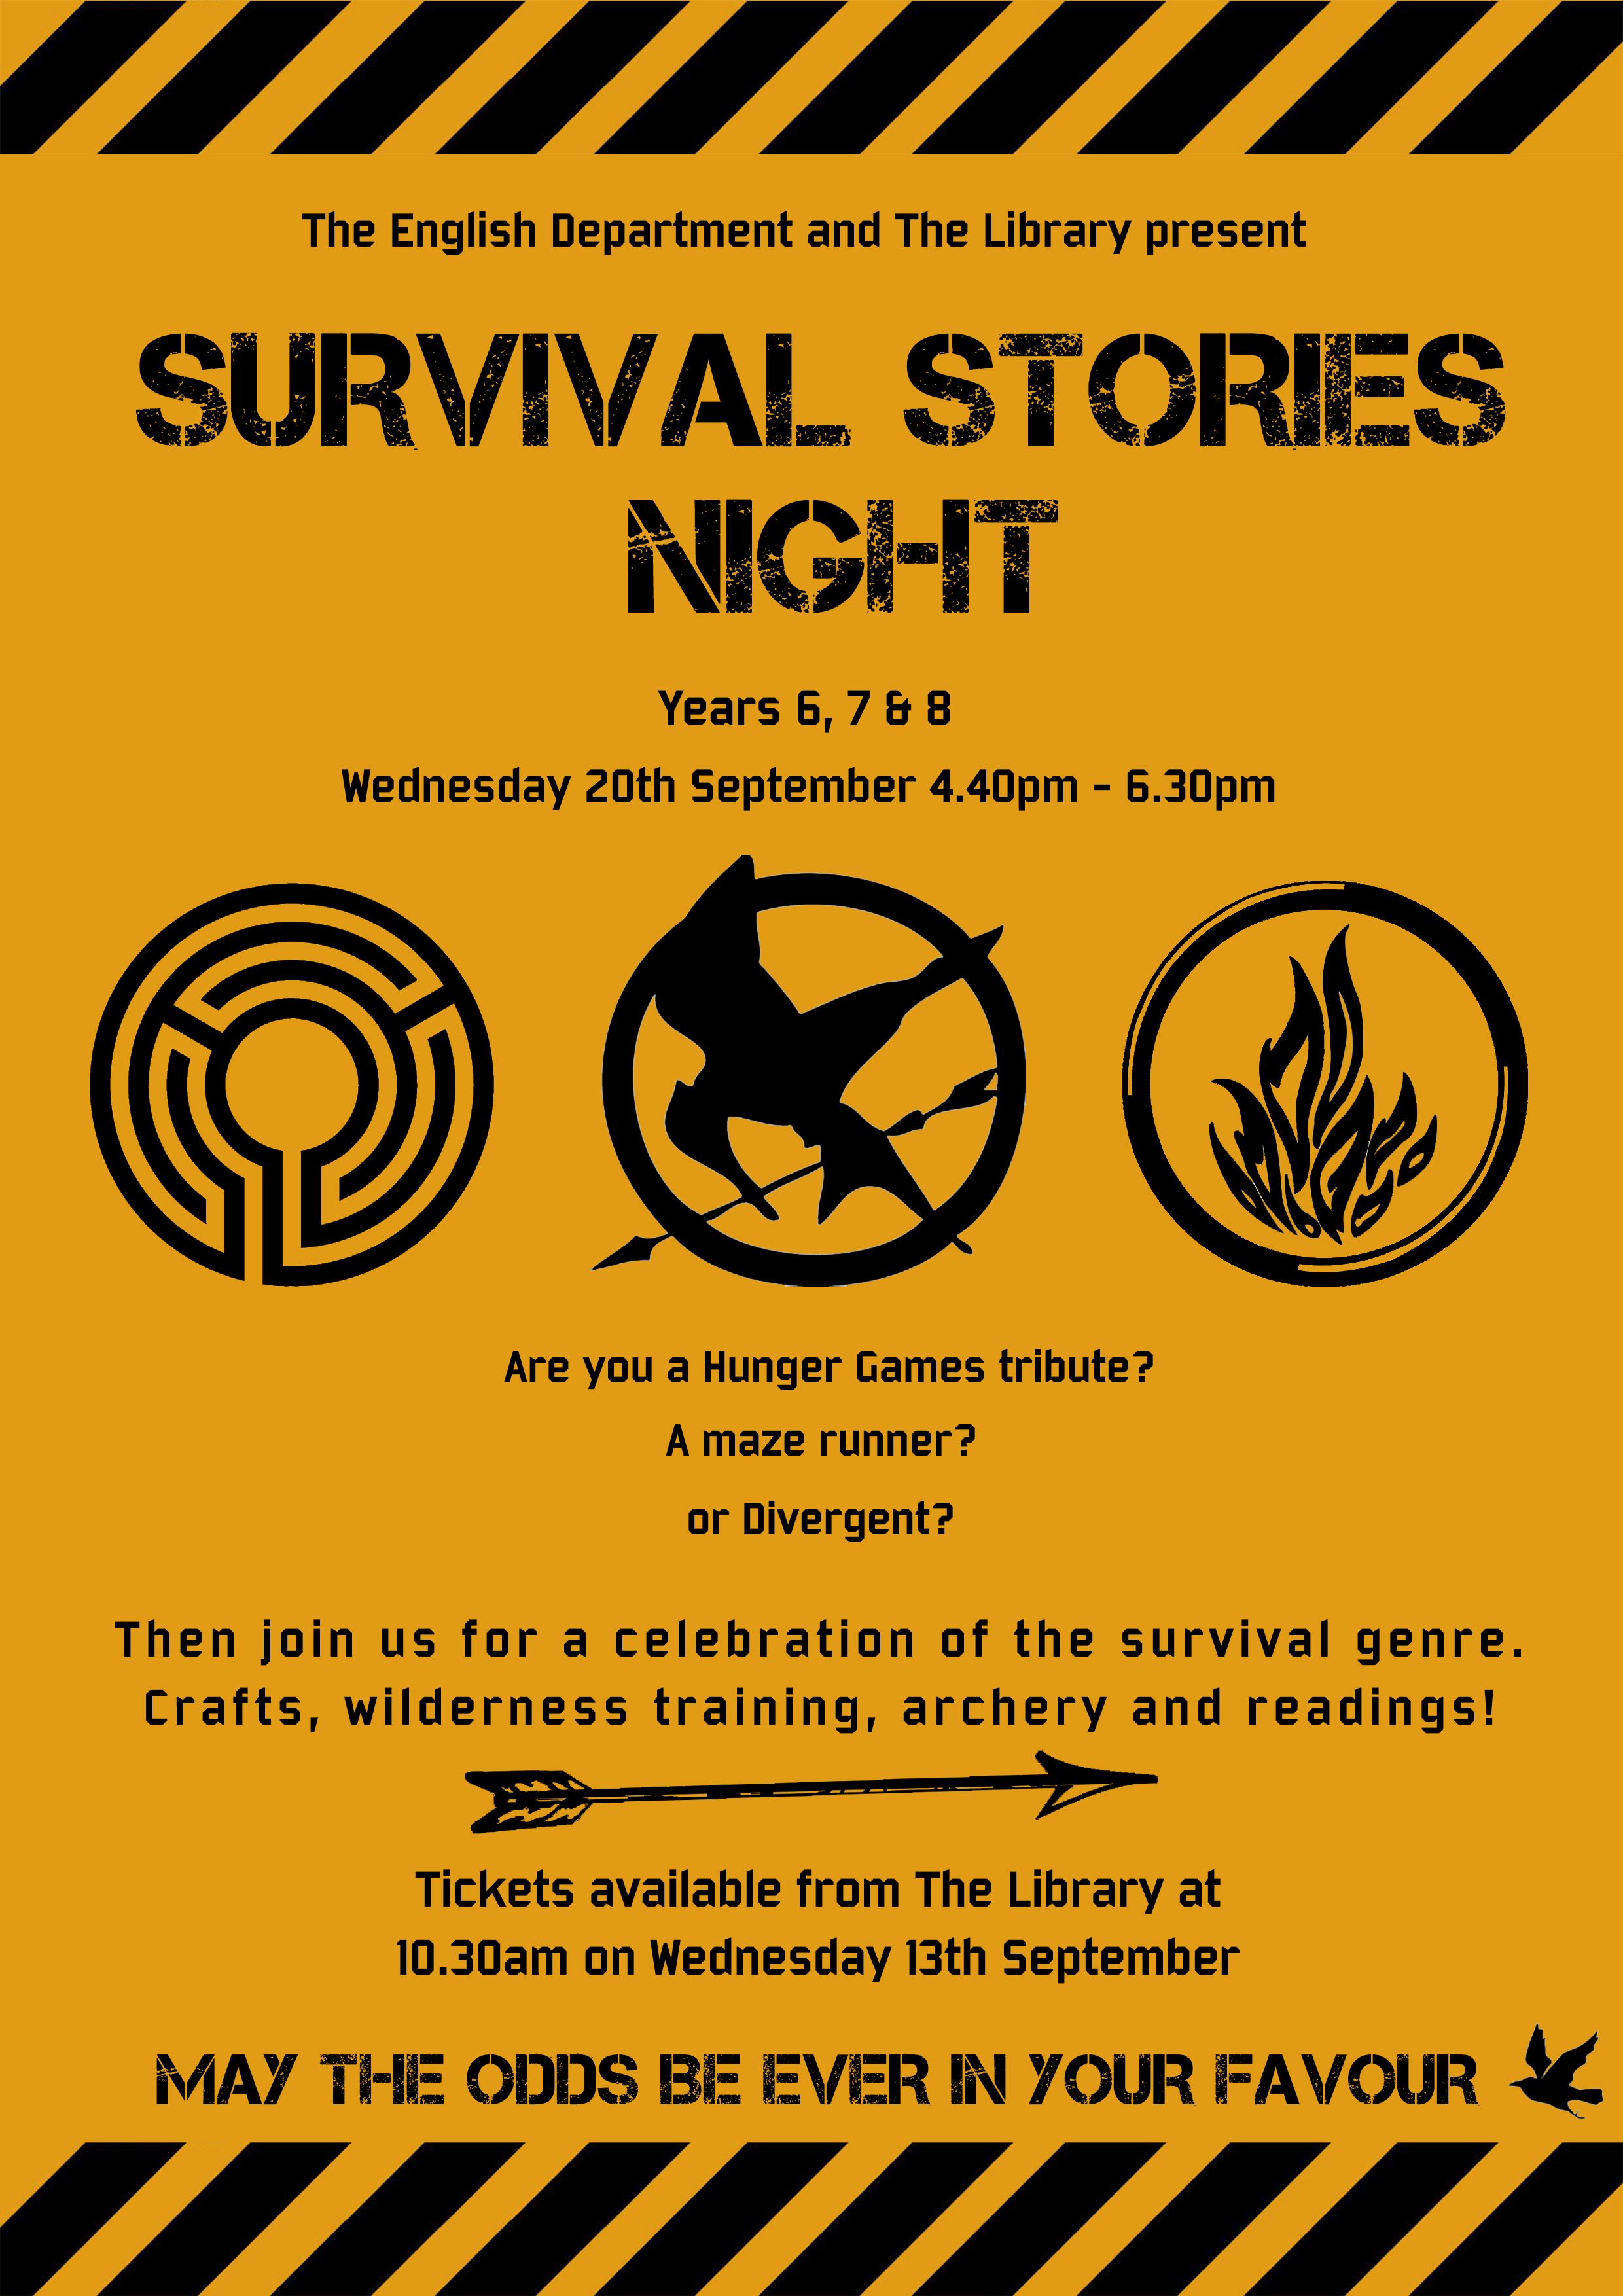 Survival Stories Night for Years 6, 7 & 8